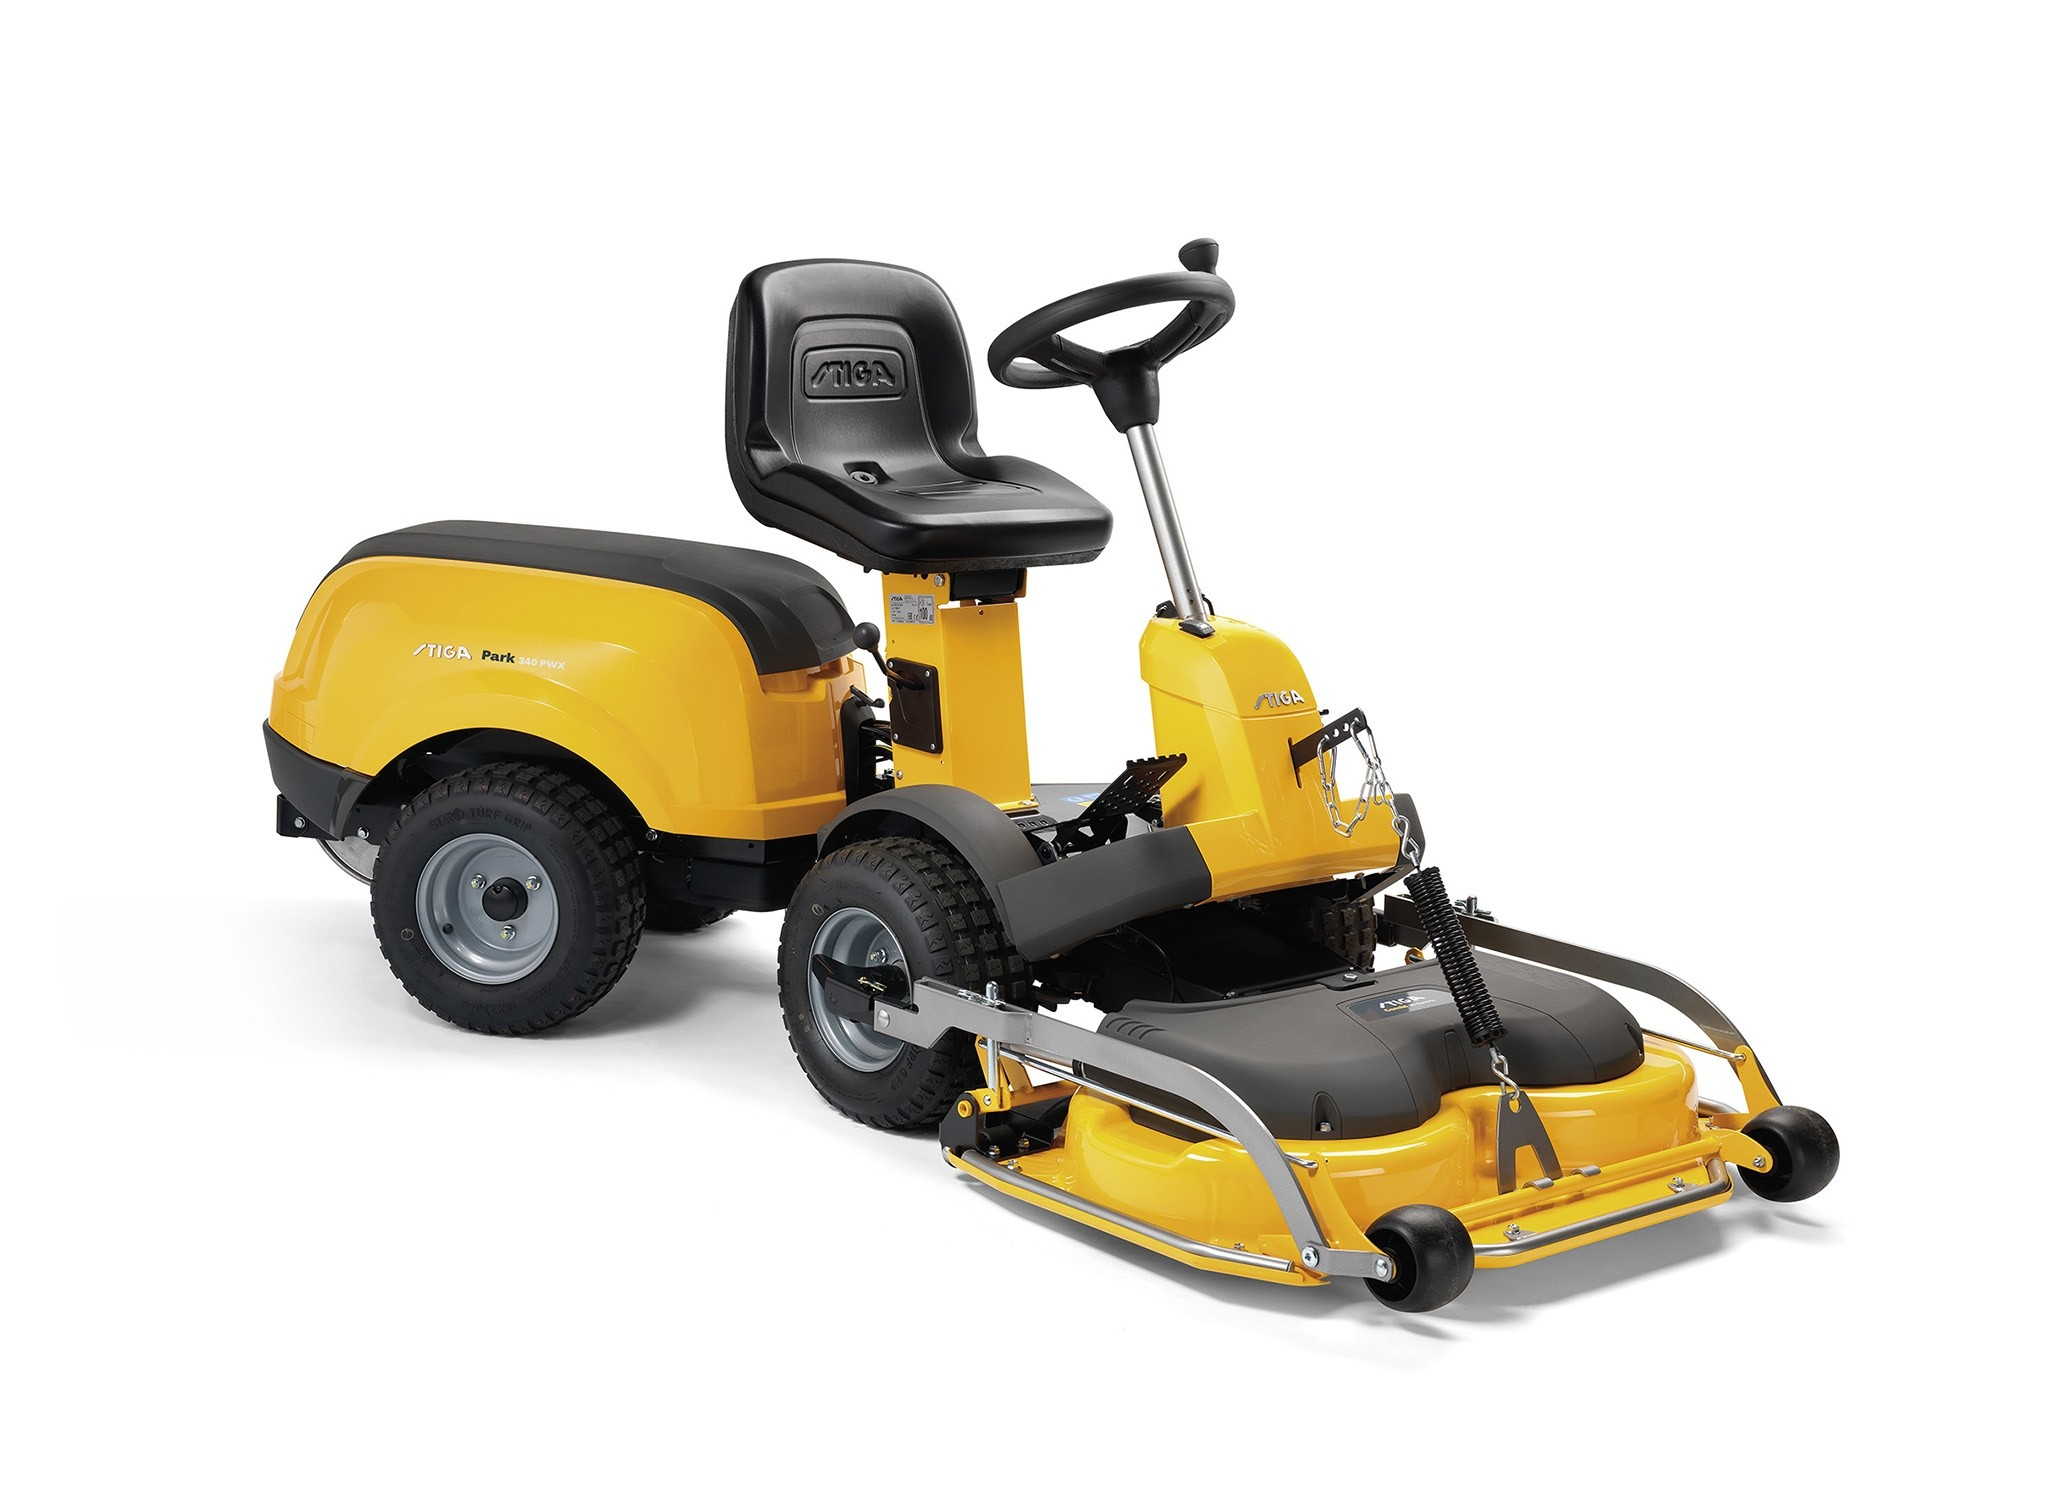 park 340 lawnmower